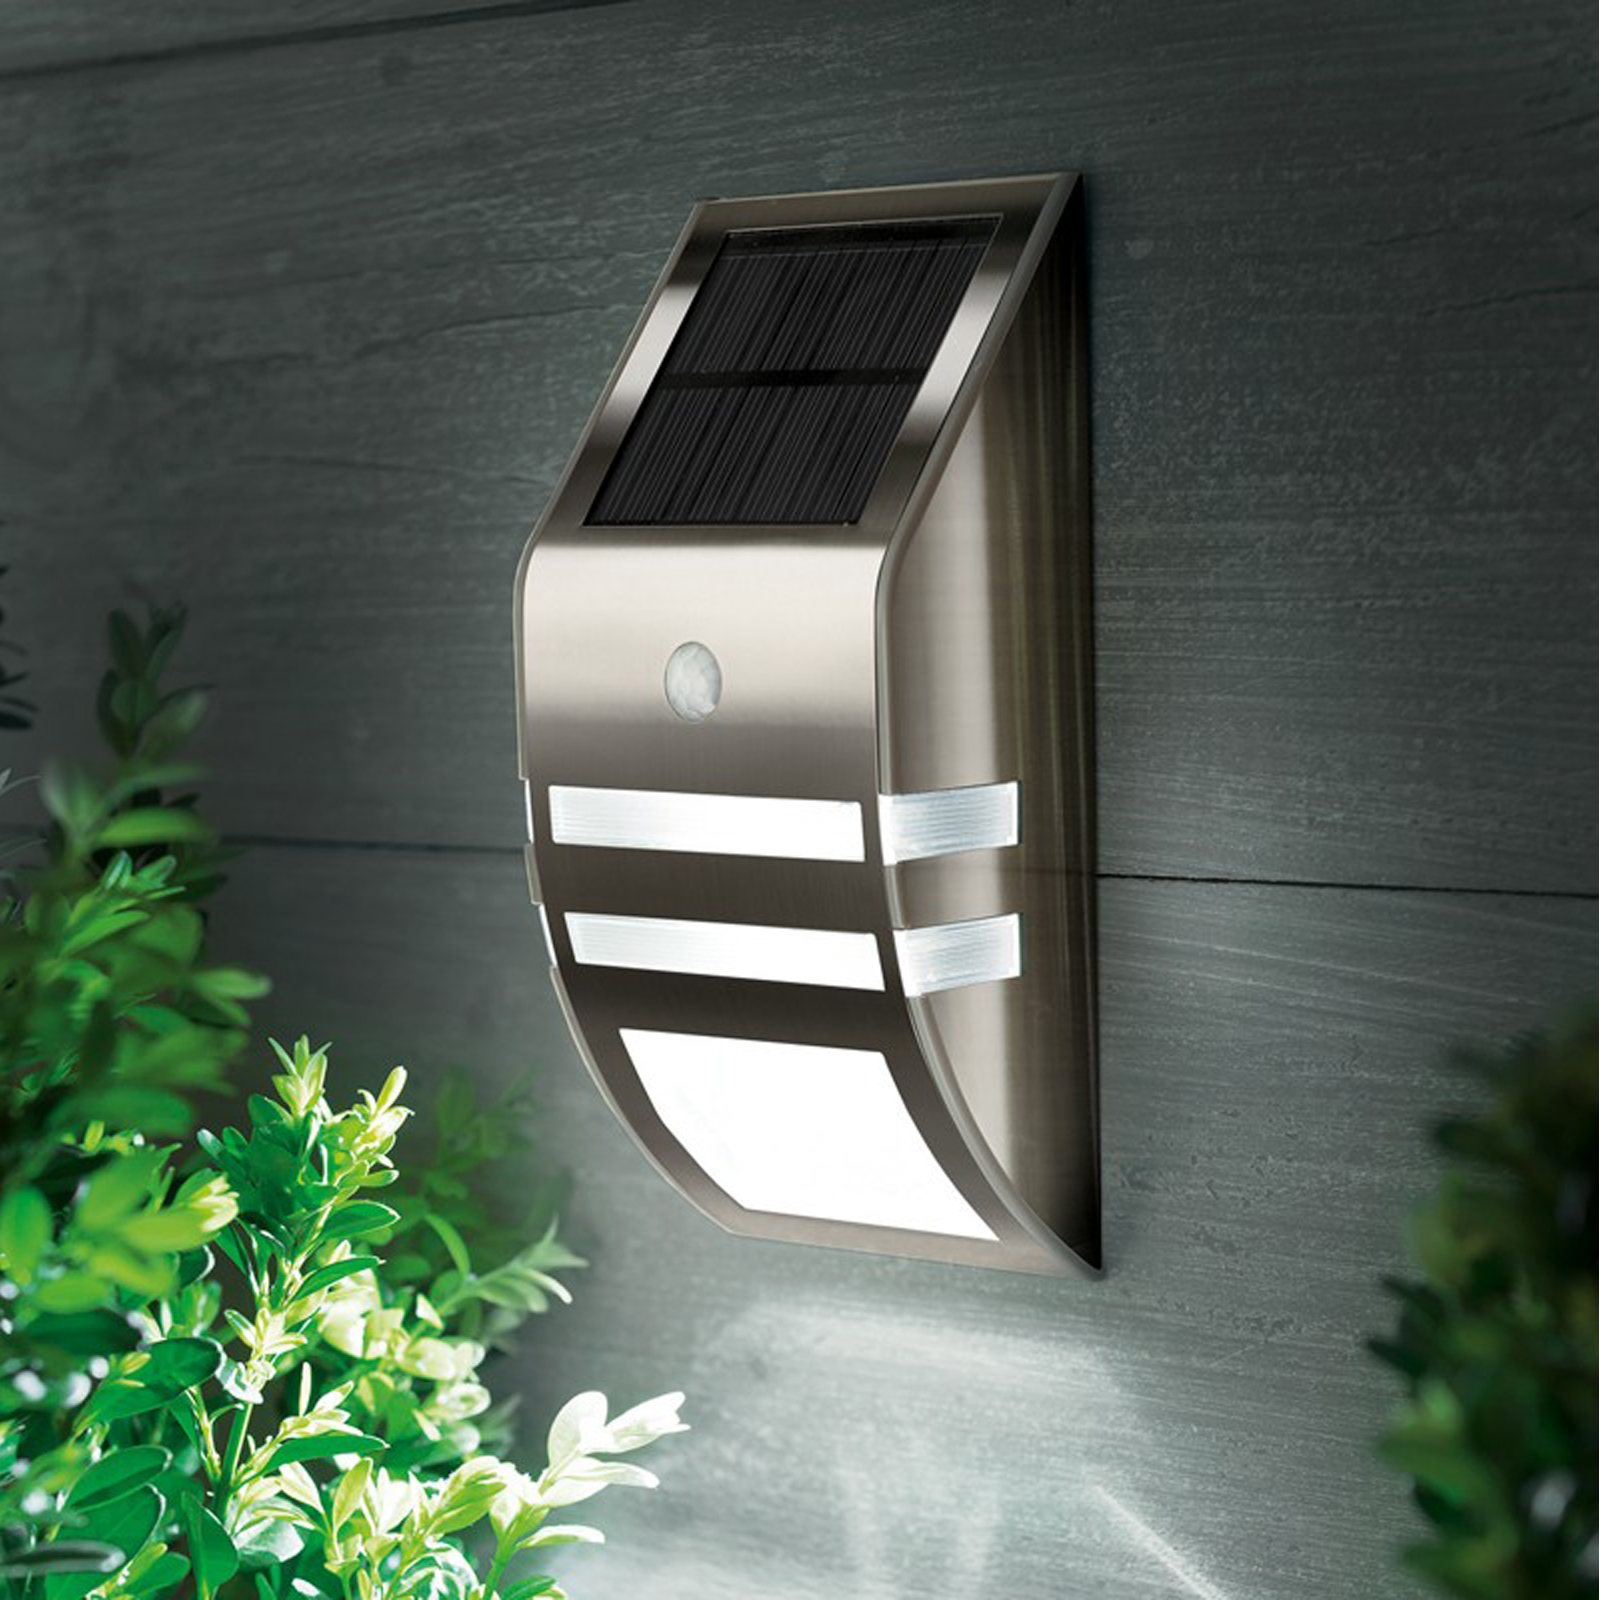 Led Outdoor Light Too Bright: Shop For Cheap Lighting And Save Online